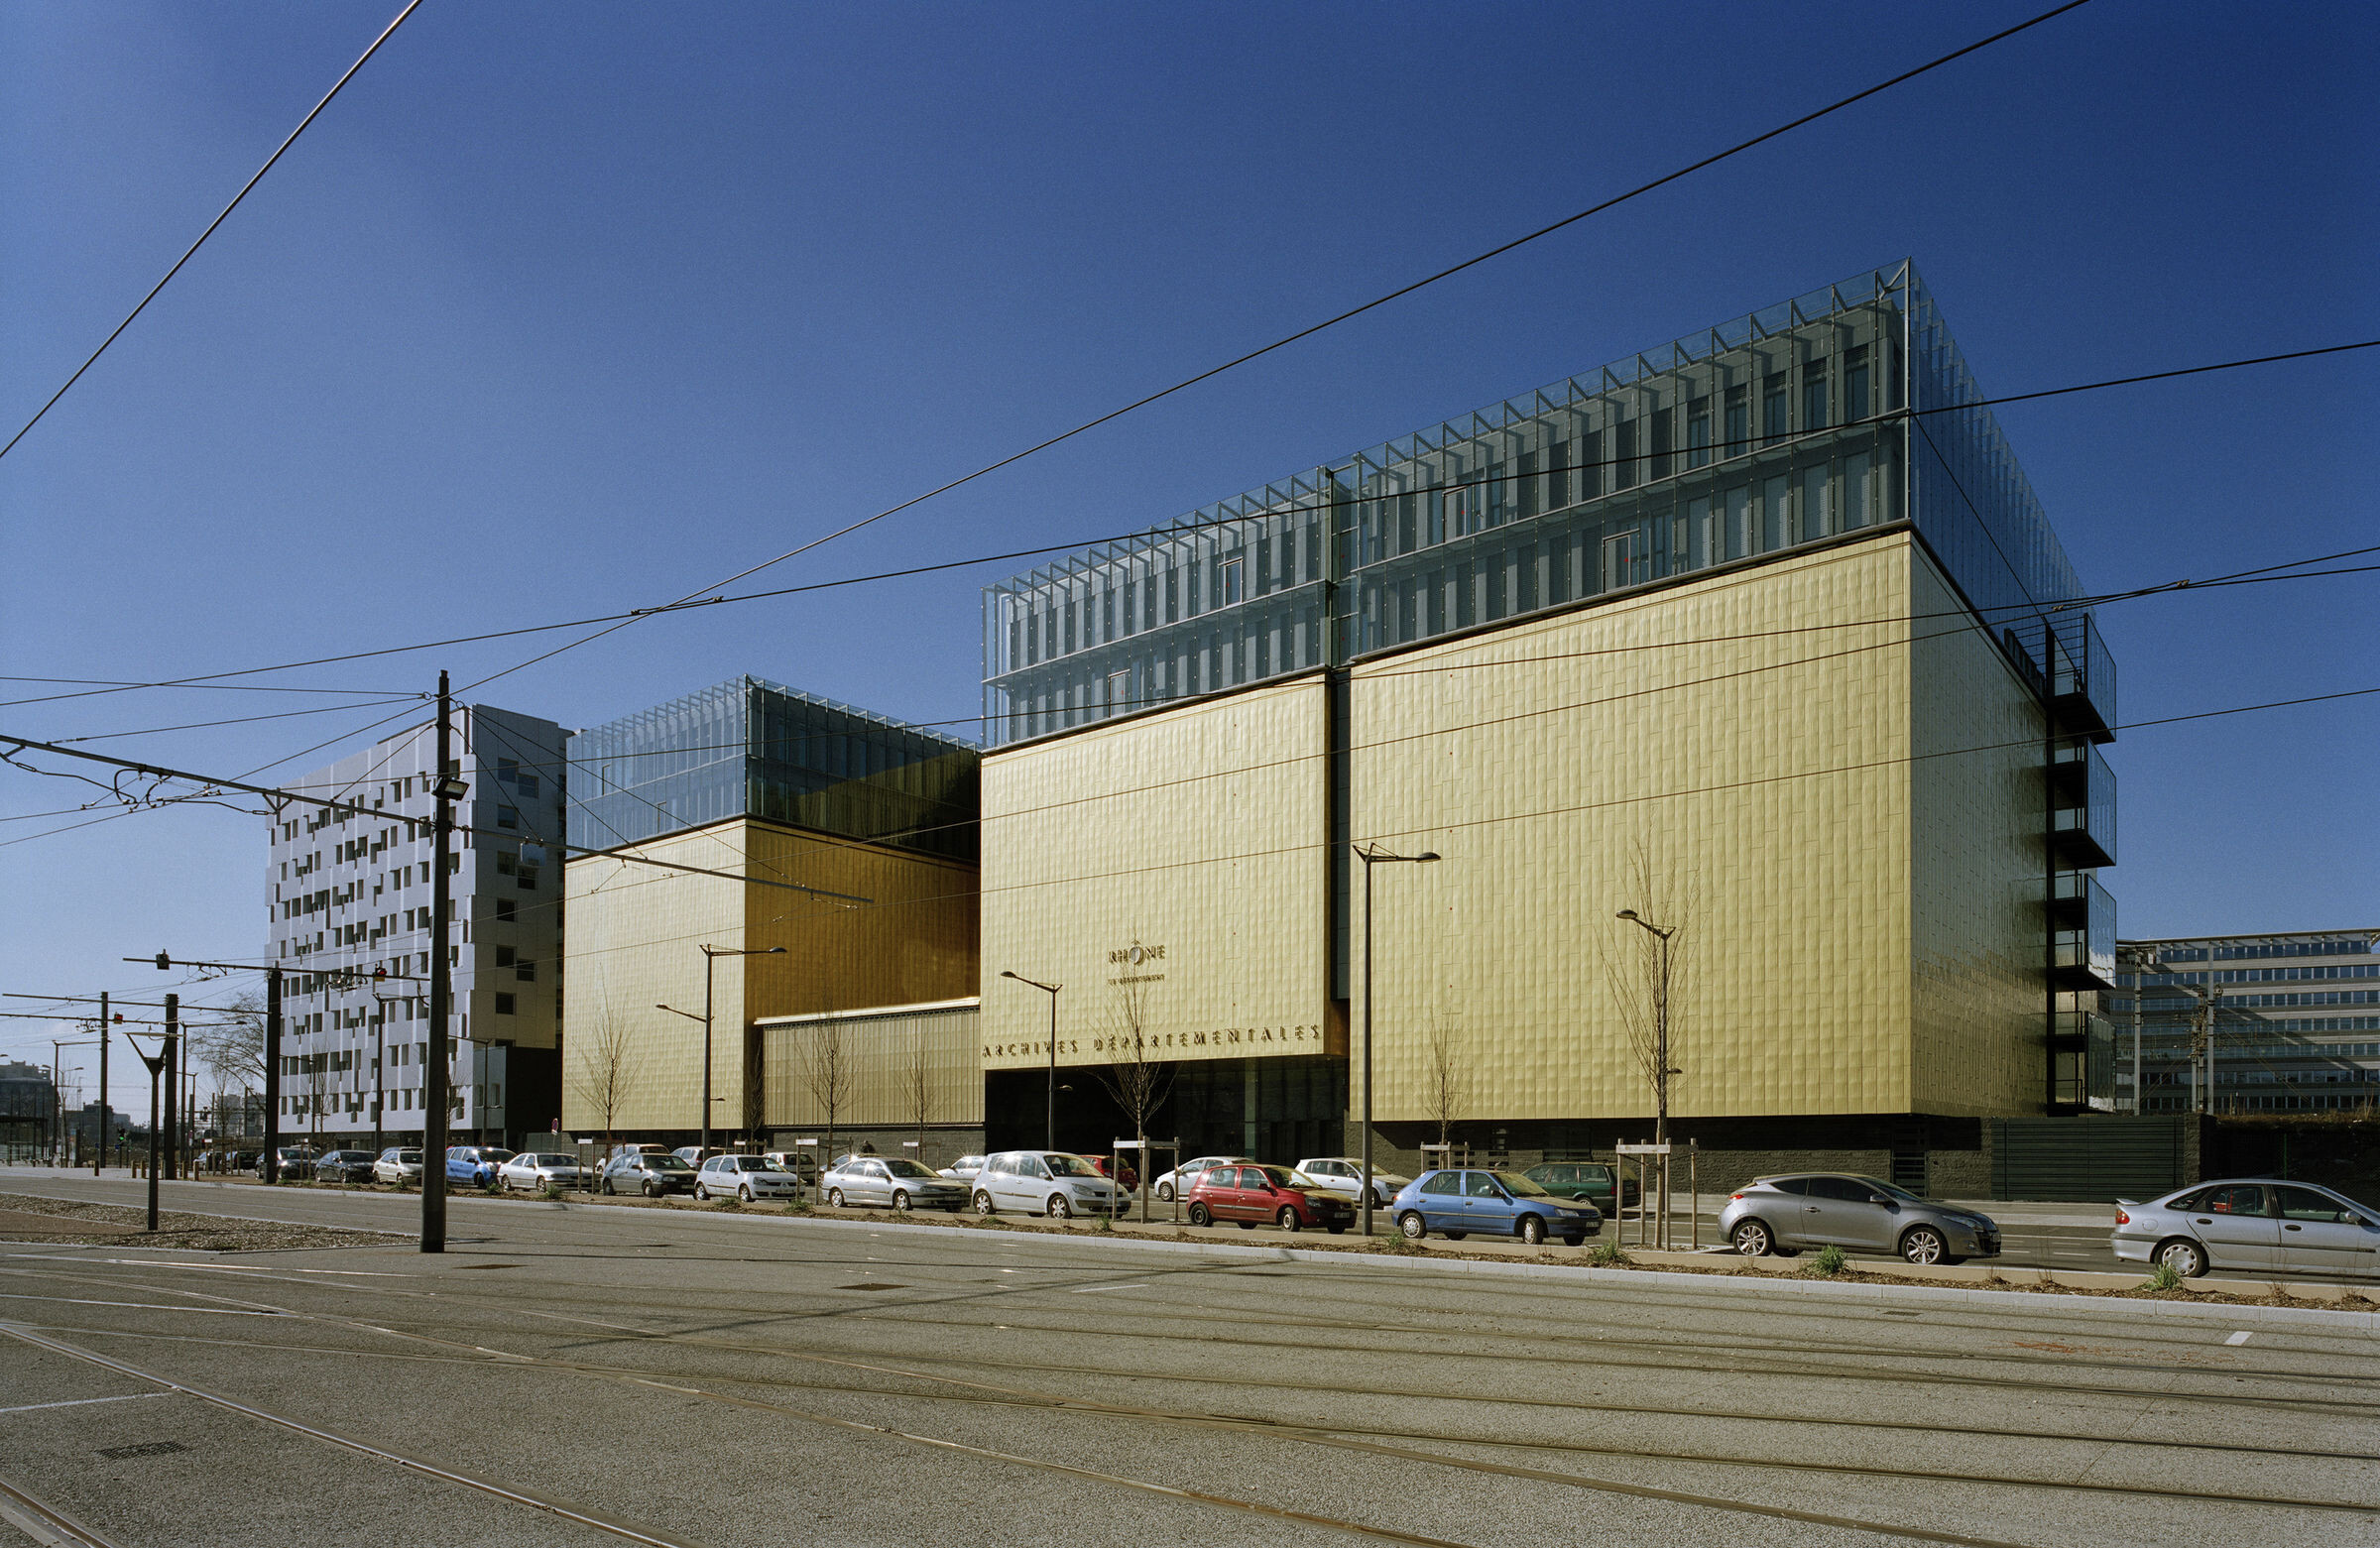 New Departmental Archives of the Rhône Building